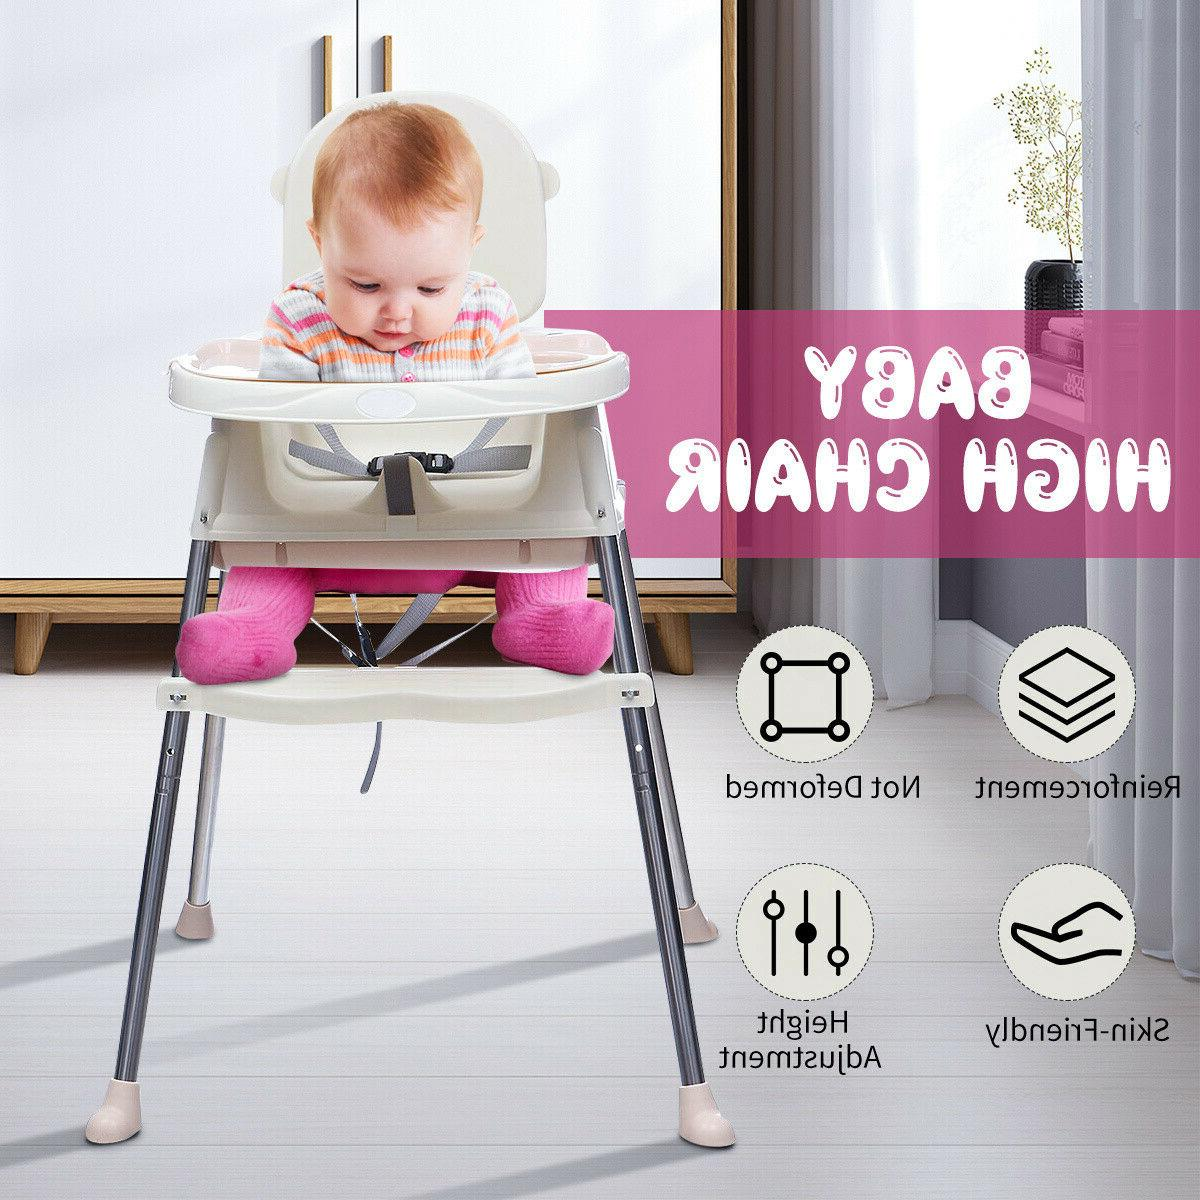 baby high chair convertible play table seat